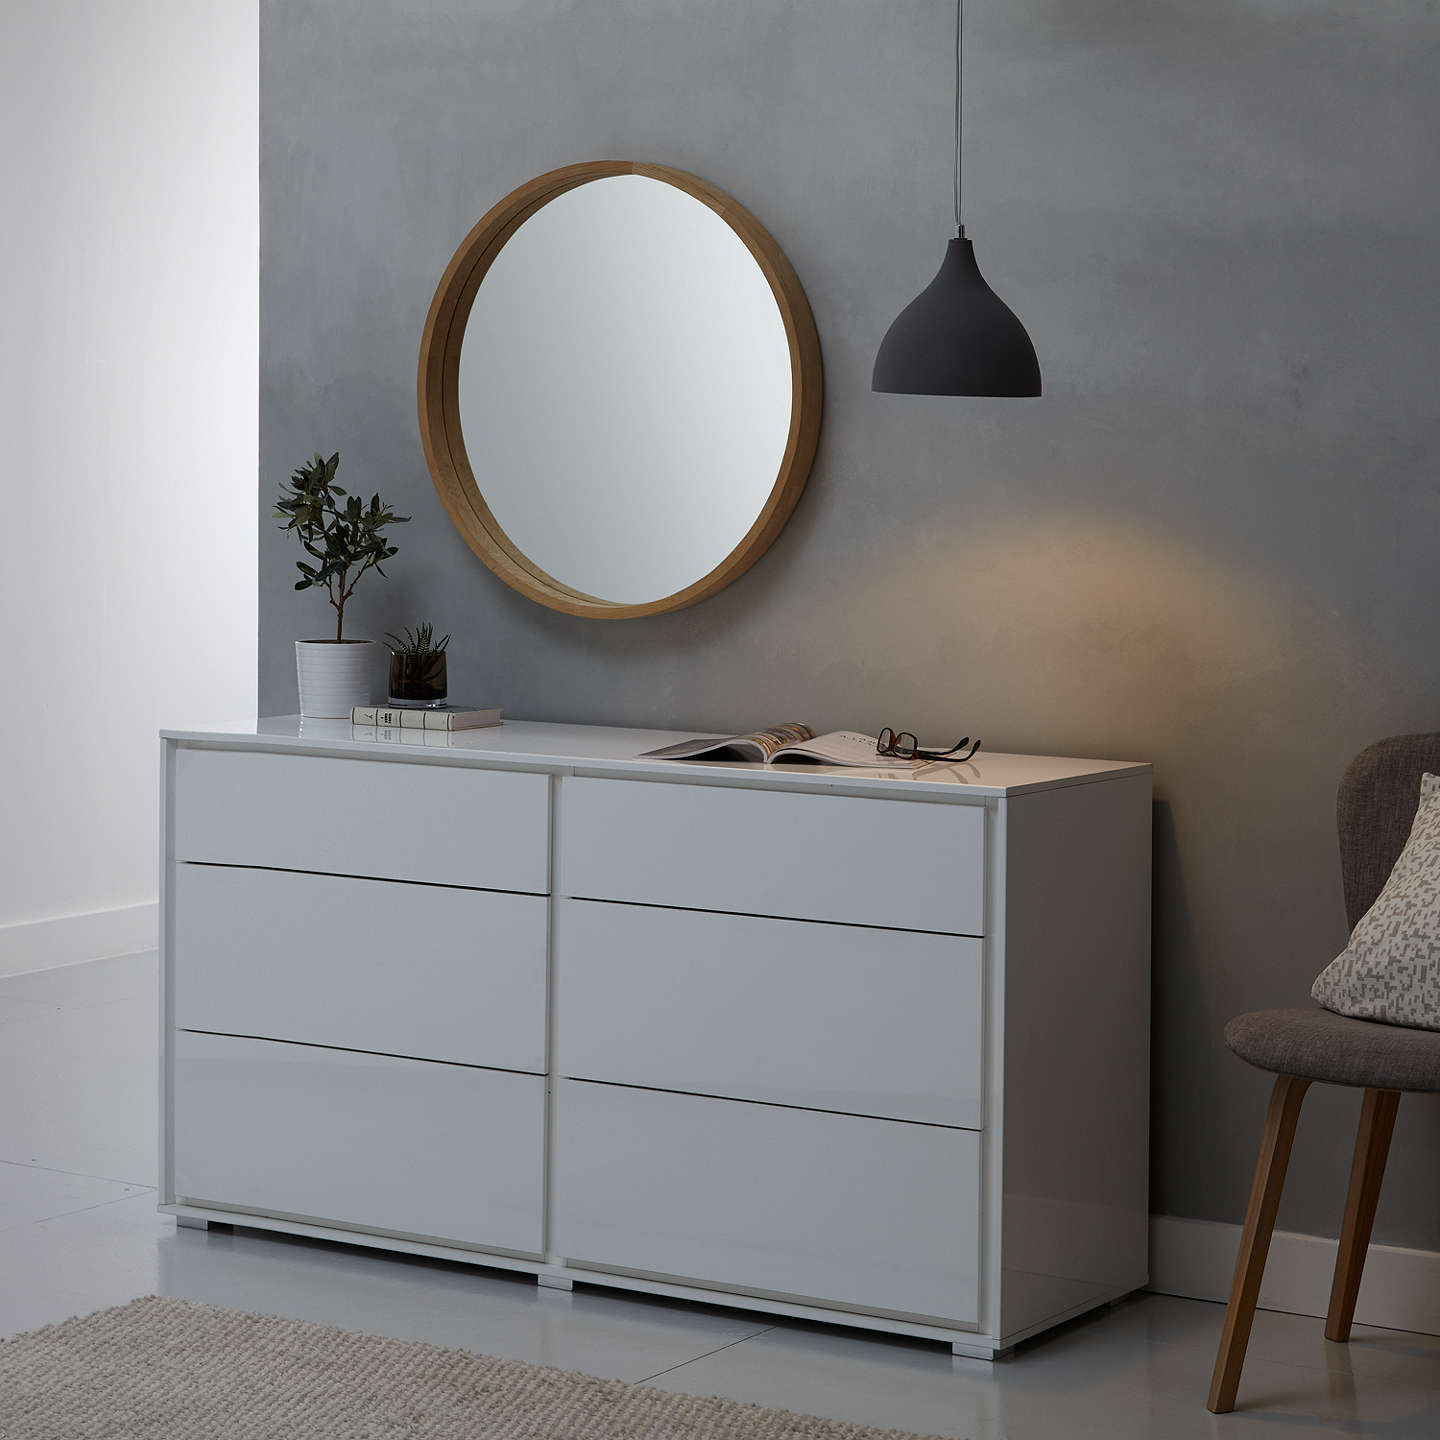 john lewis round oak scandi mirror 70 x 70cm natural at. Black Bedroom Furniture Sets. Home Design Ideas